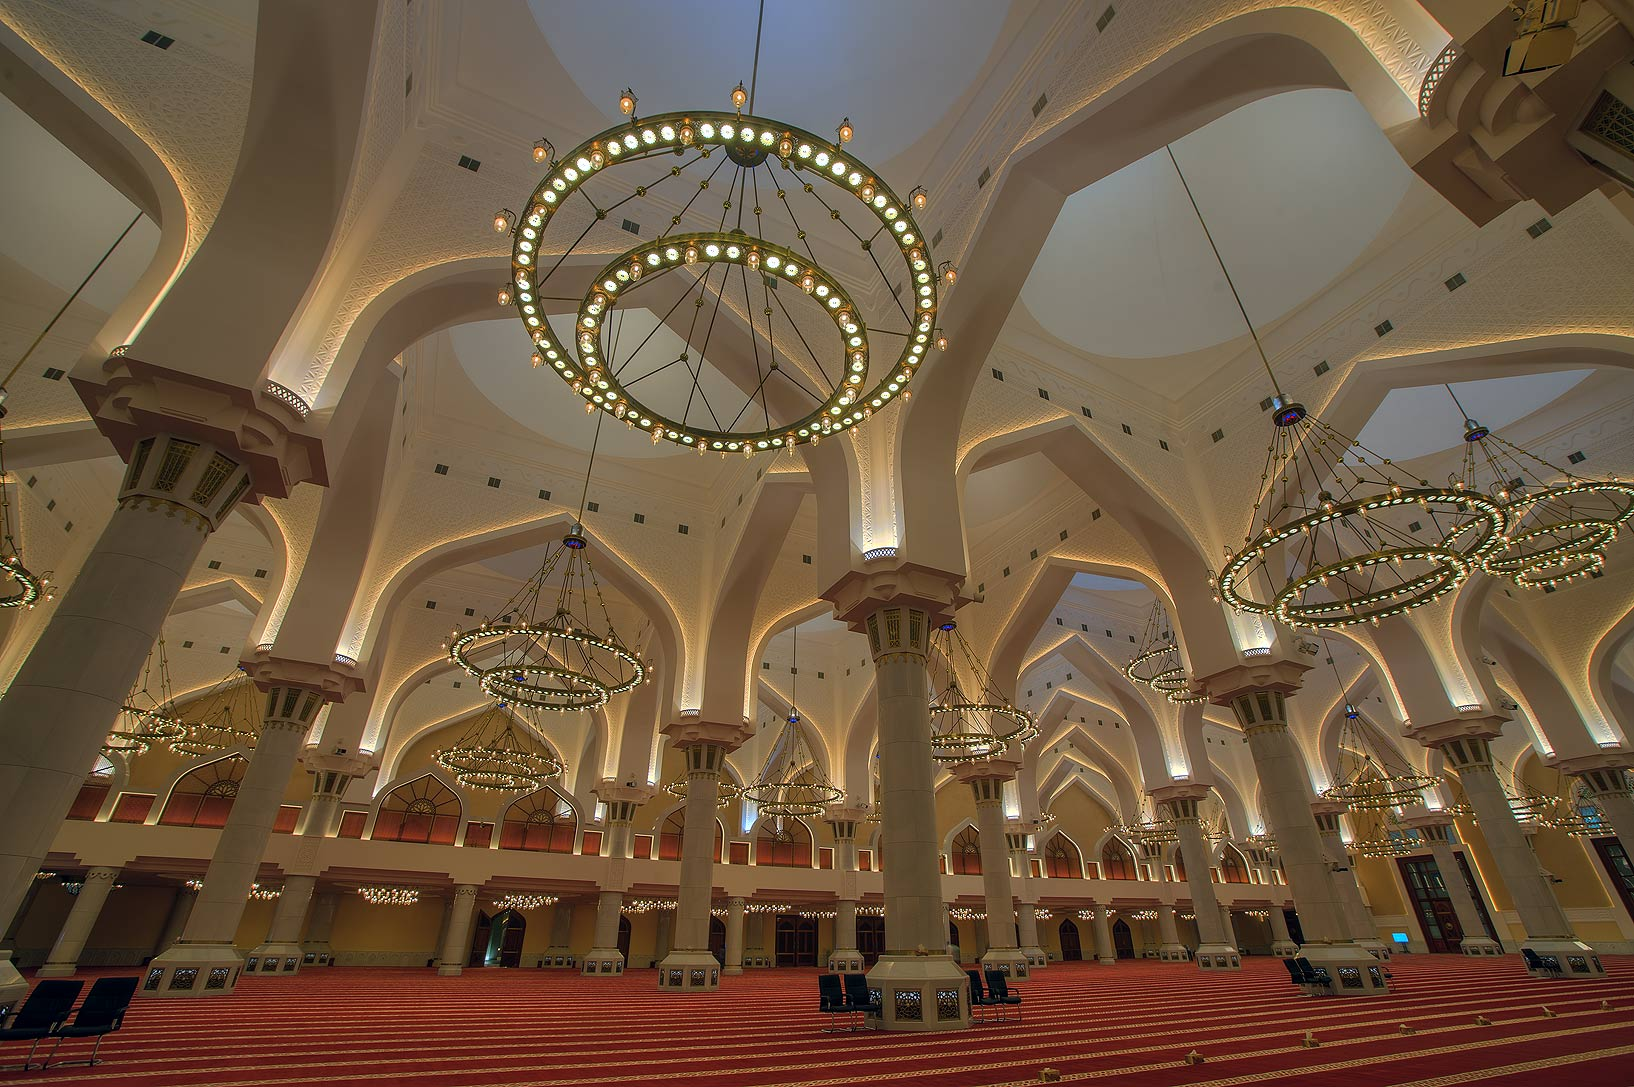 Arches of prayer hall of State Mosque (Sheikh...Ibn Abdul Wahhab Mosque). Doha, Qatar